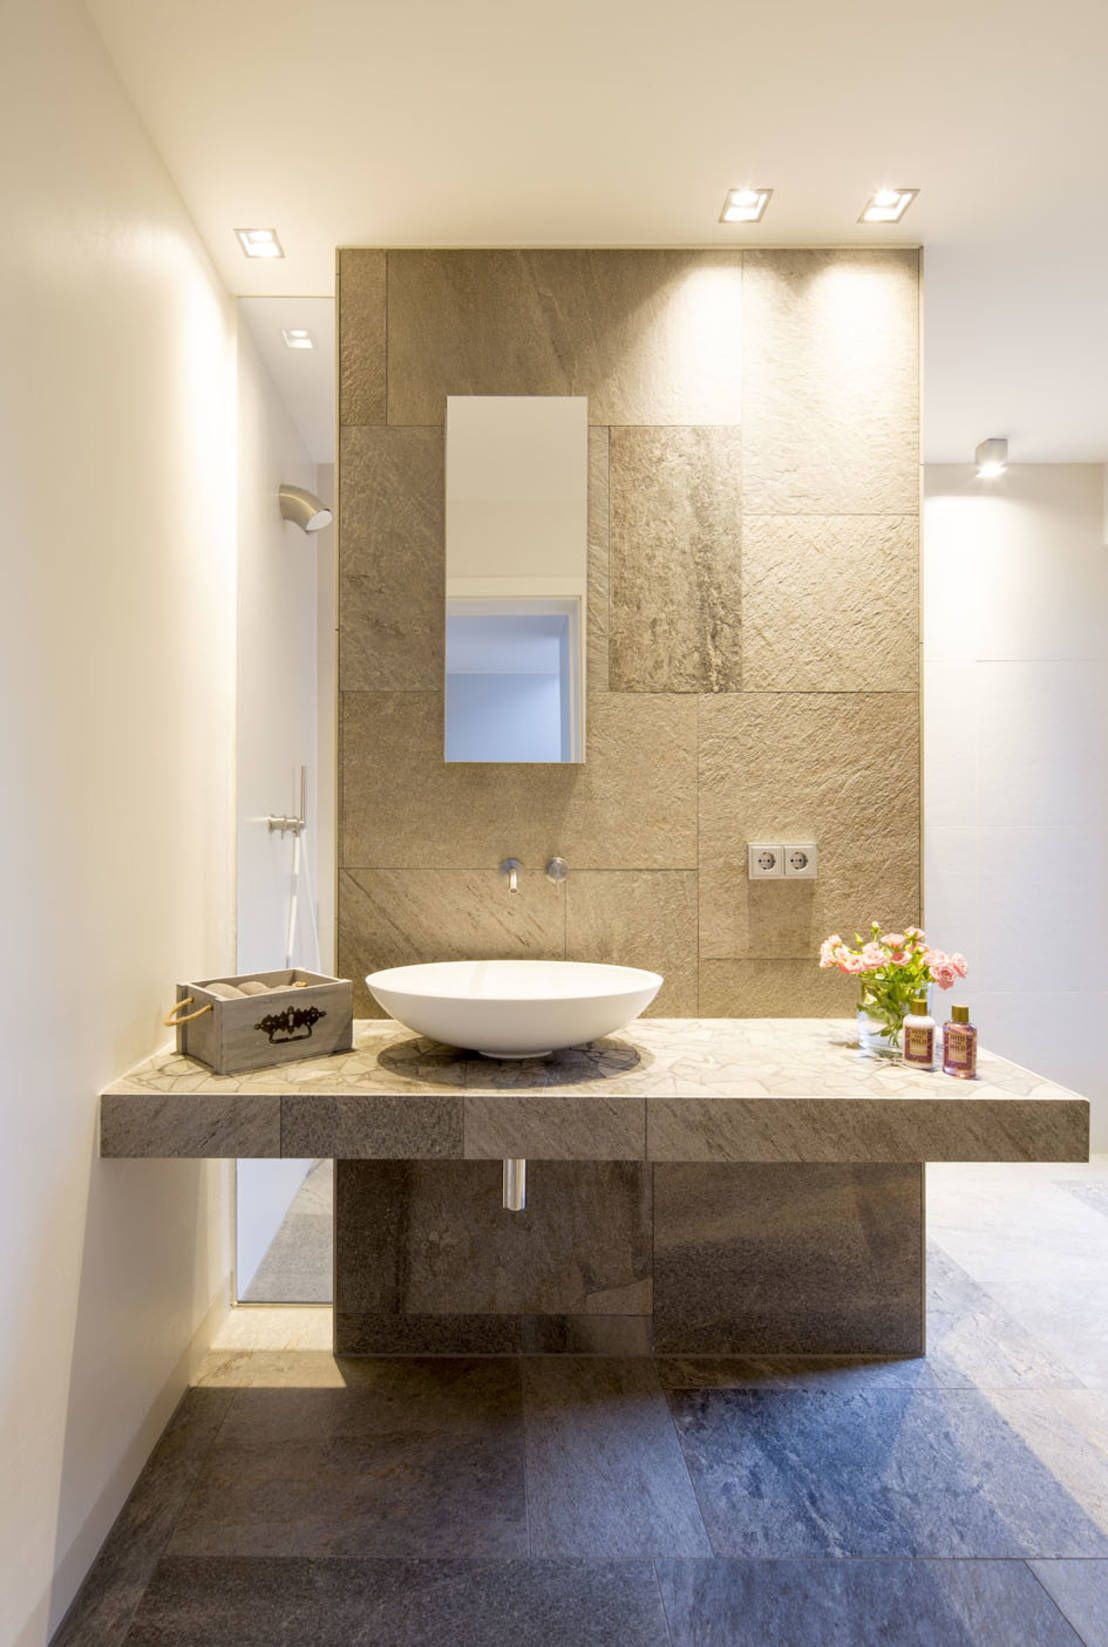 Badezimmer design draußen sigrid windisch sigridwindisch on pinterest